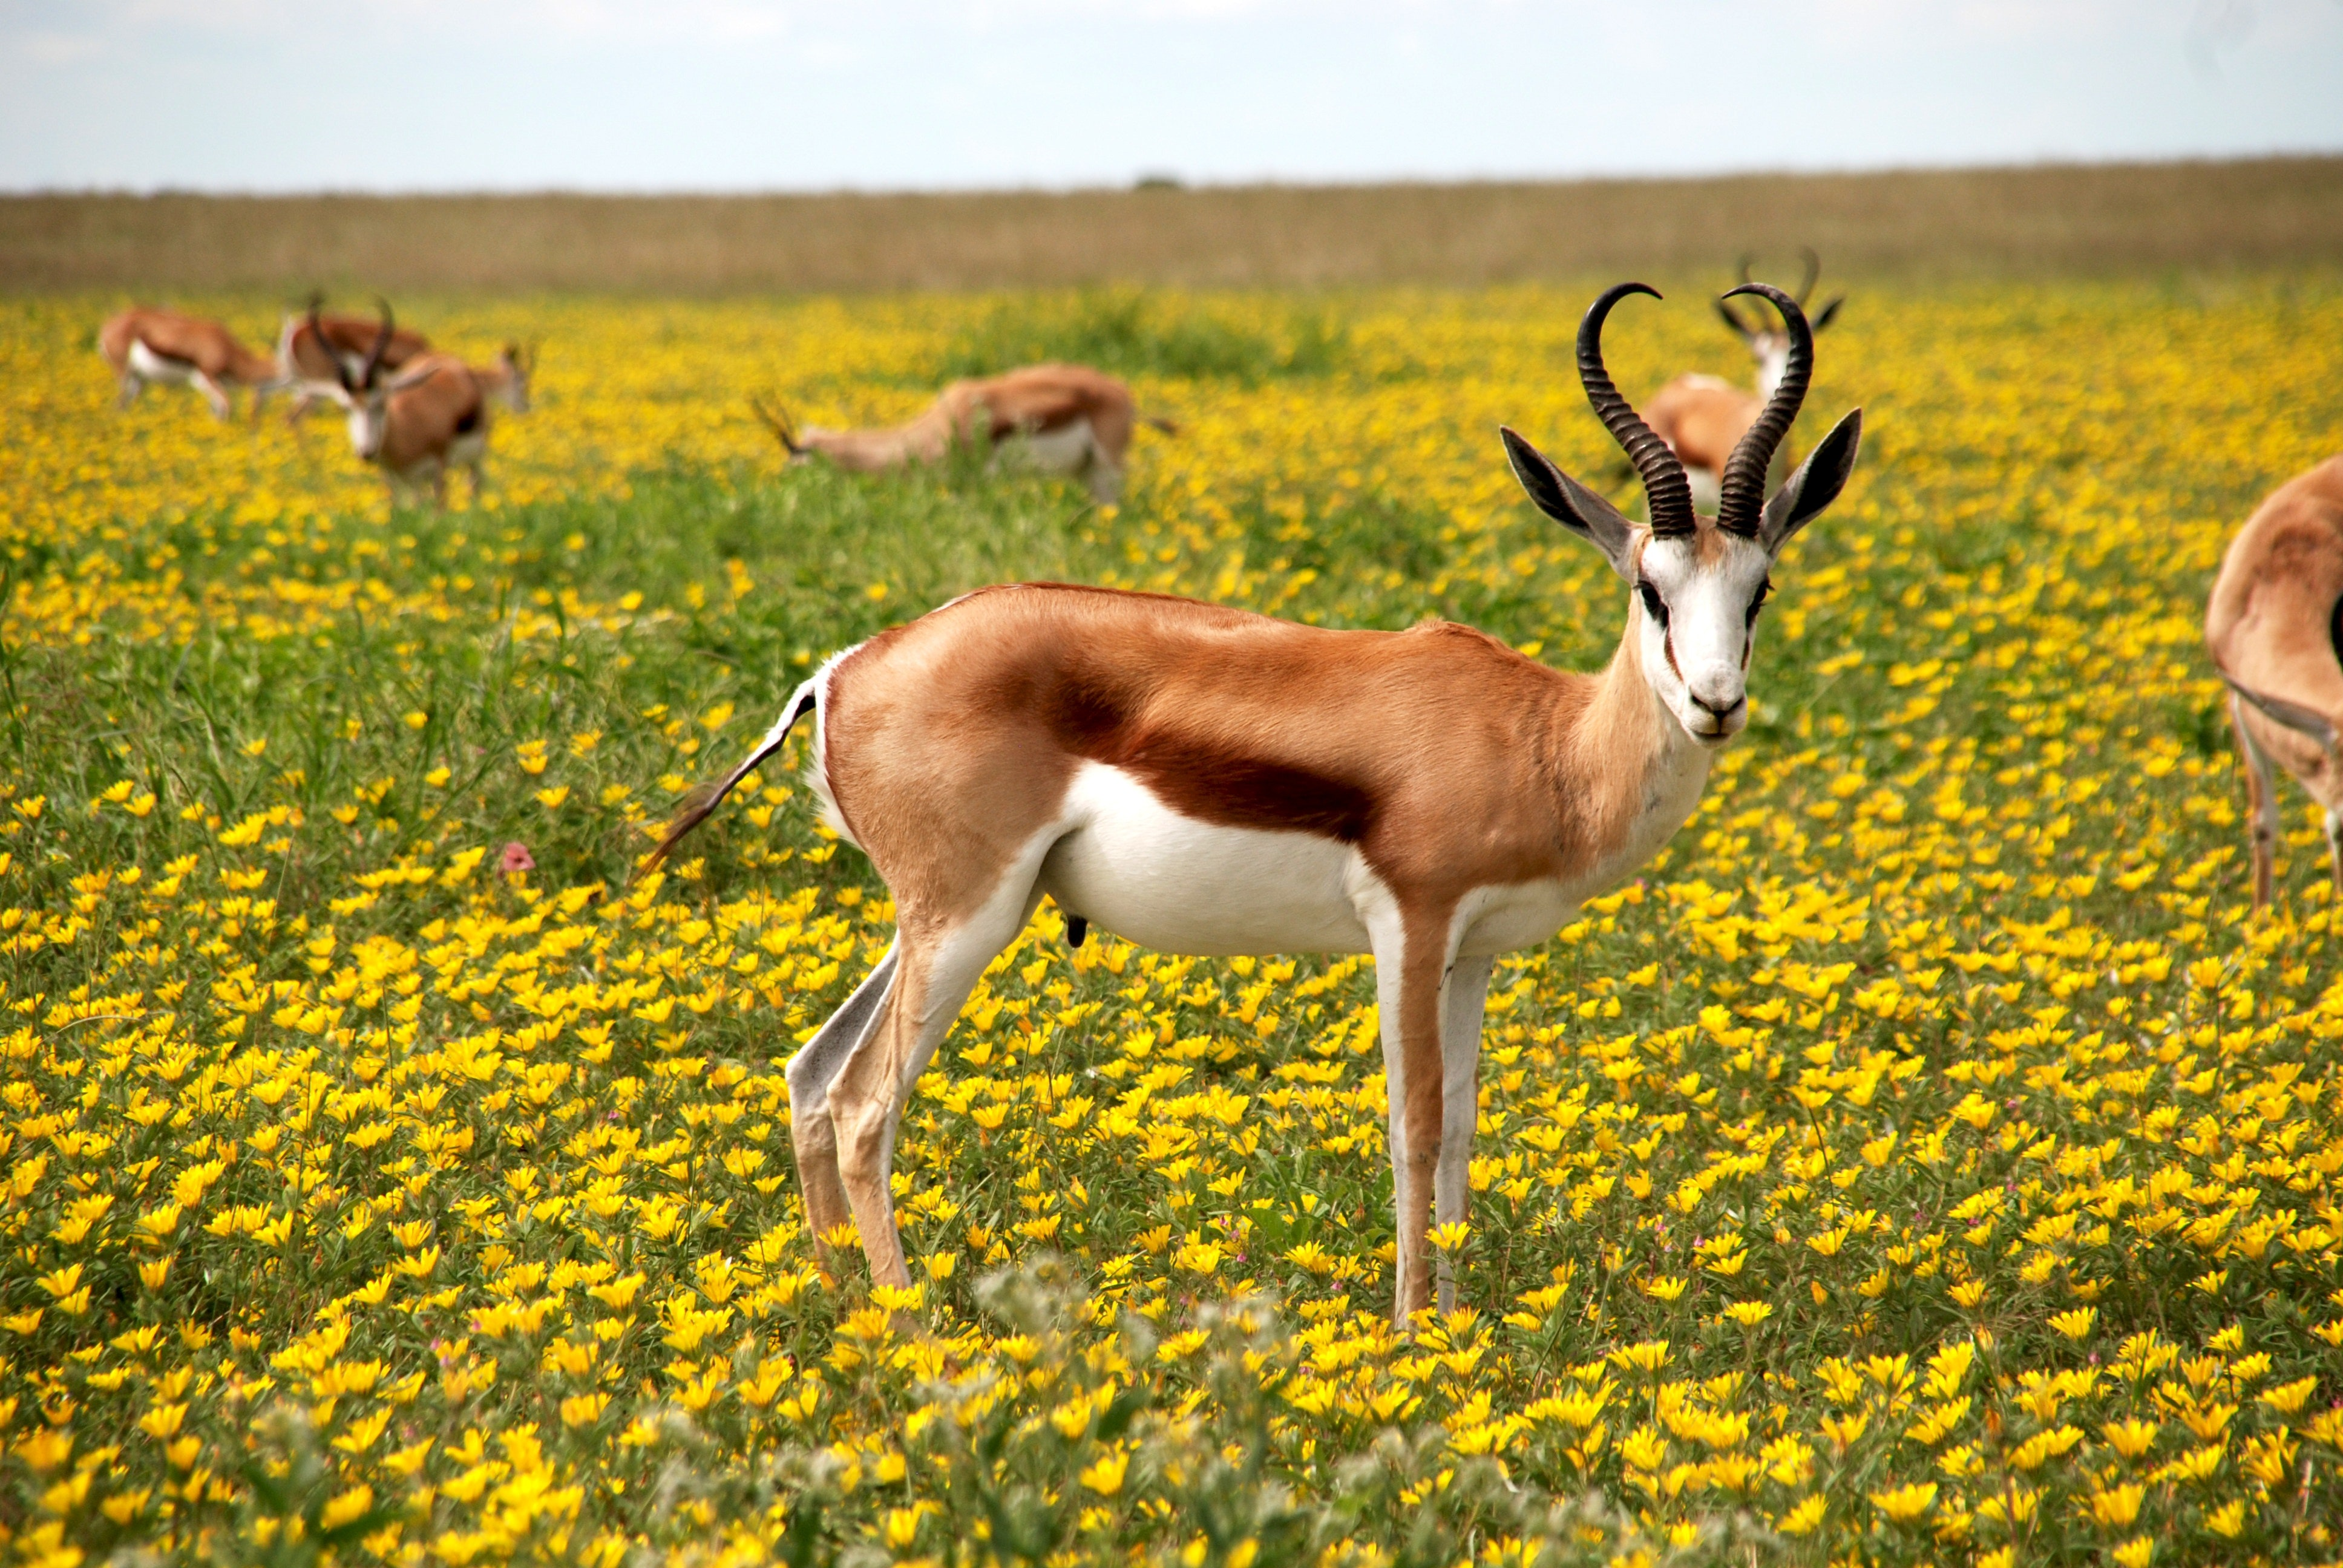 animals-antelopes-bloom-52961